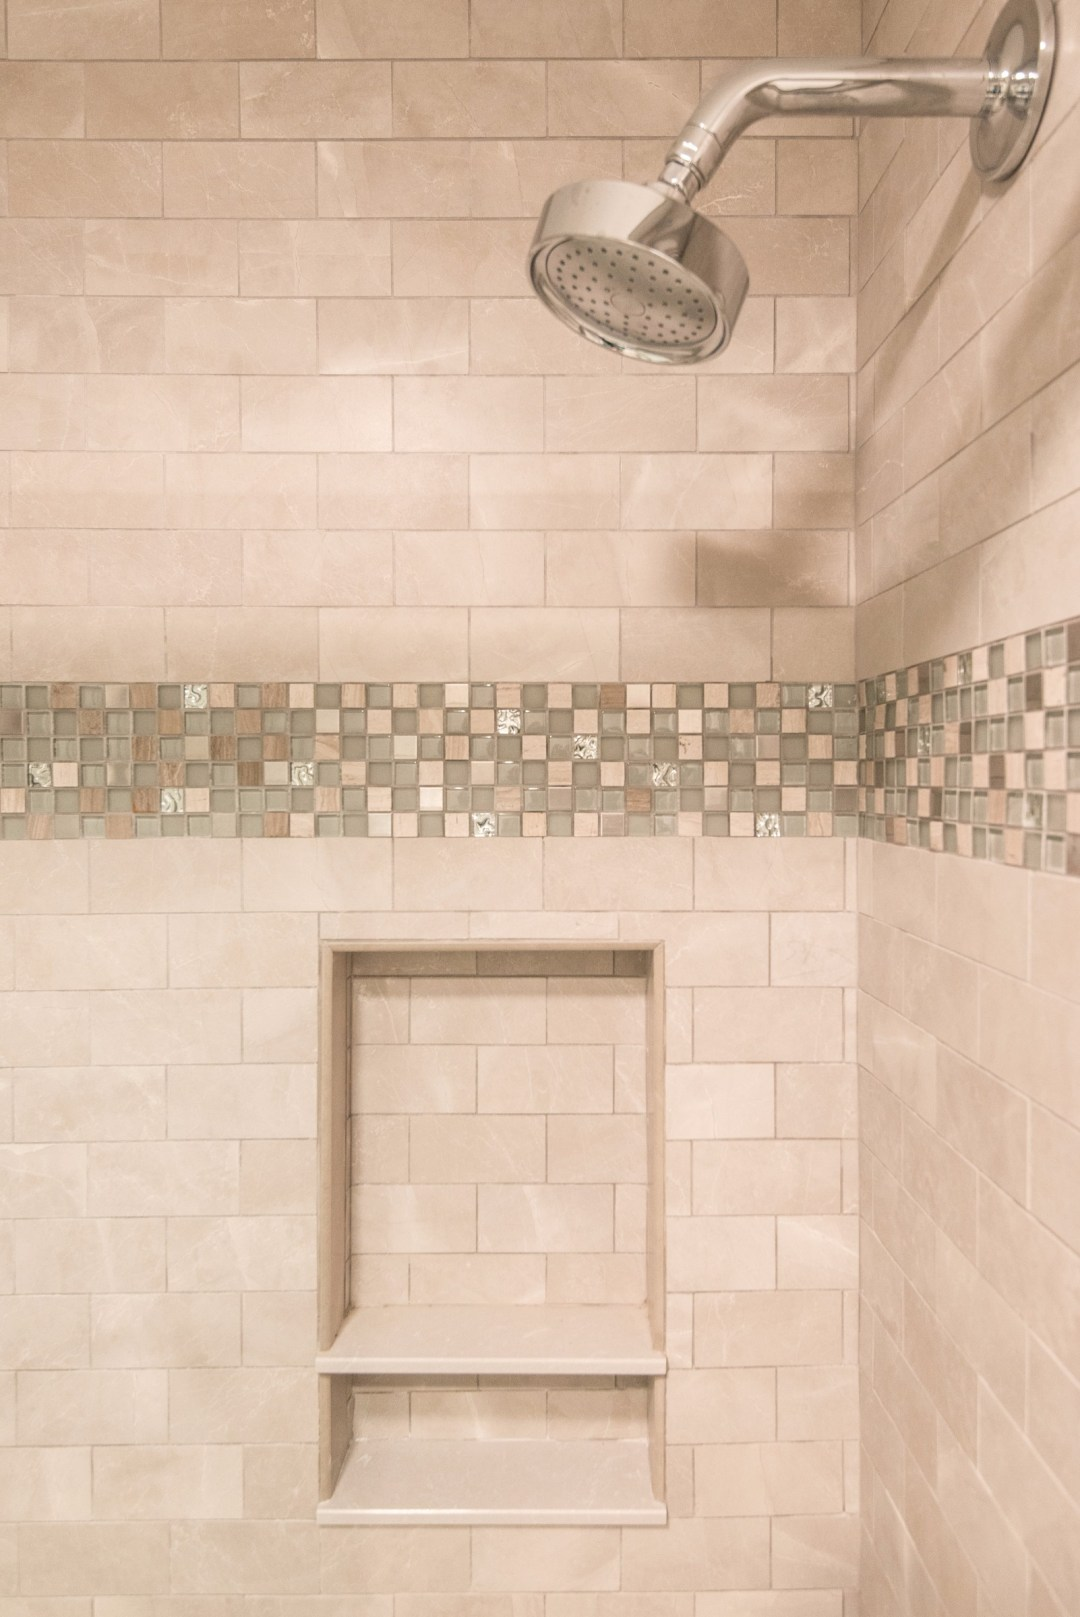 Bathroom Remodel in Kings Grant, Fenwick Island DE with Nordic Grey Subway Wall Tiles and Decorative Glass Mosaic Accents